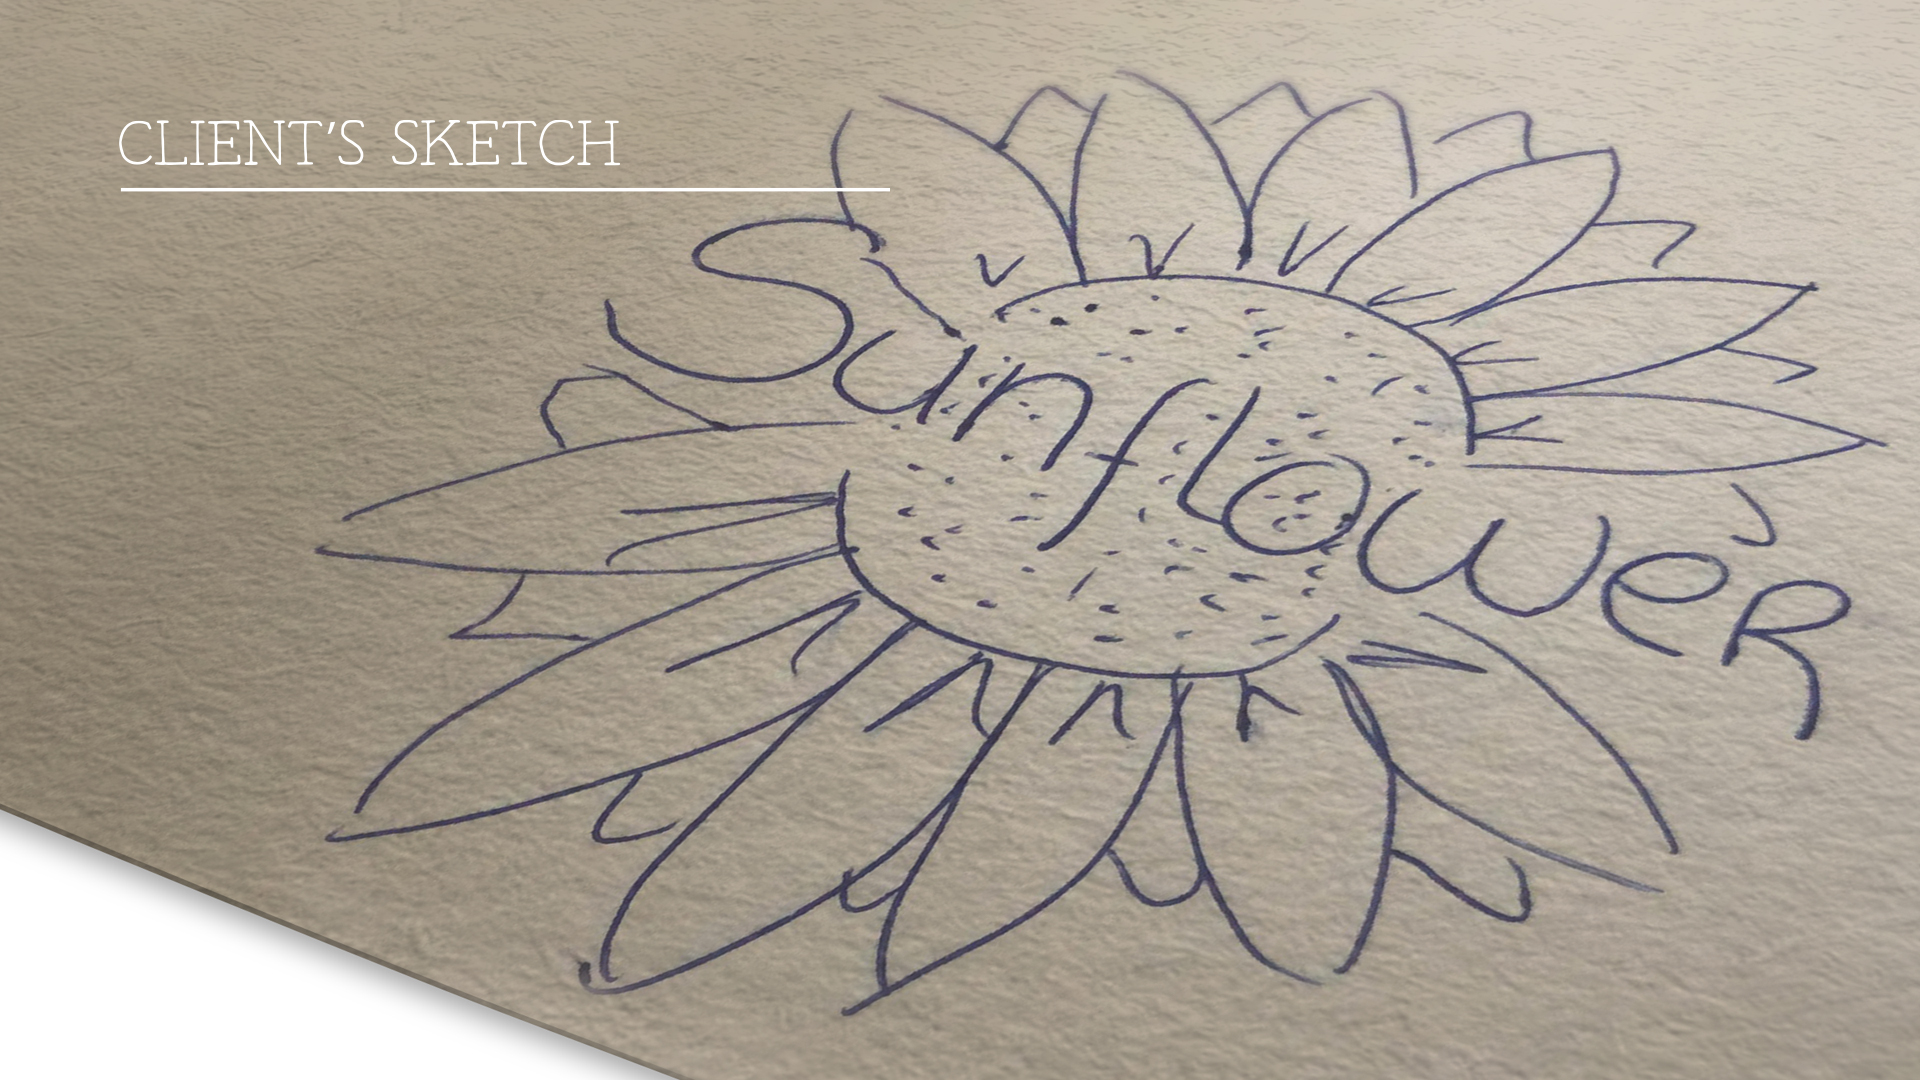 Client's sketch for a logo design project